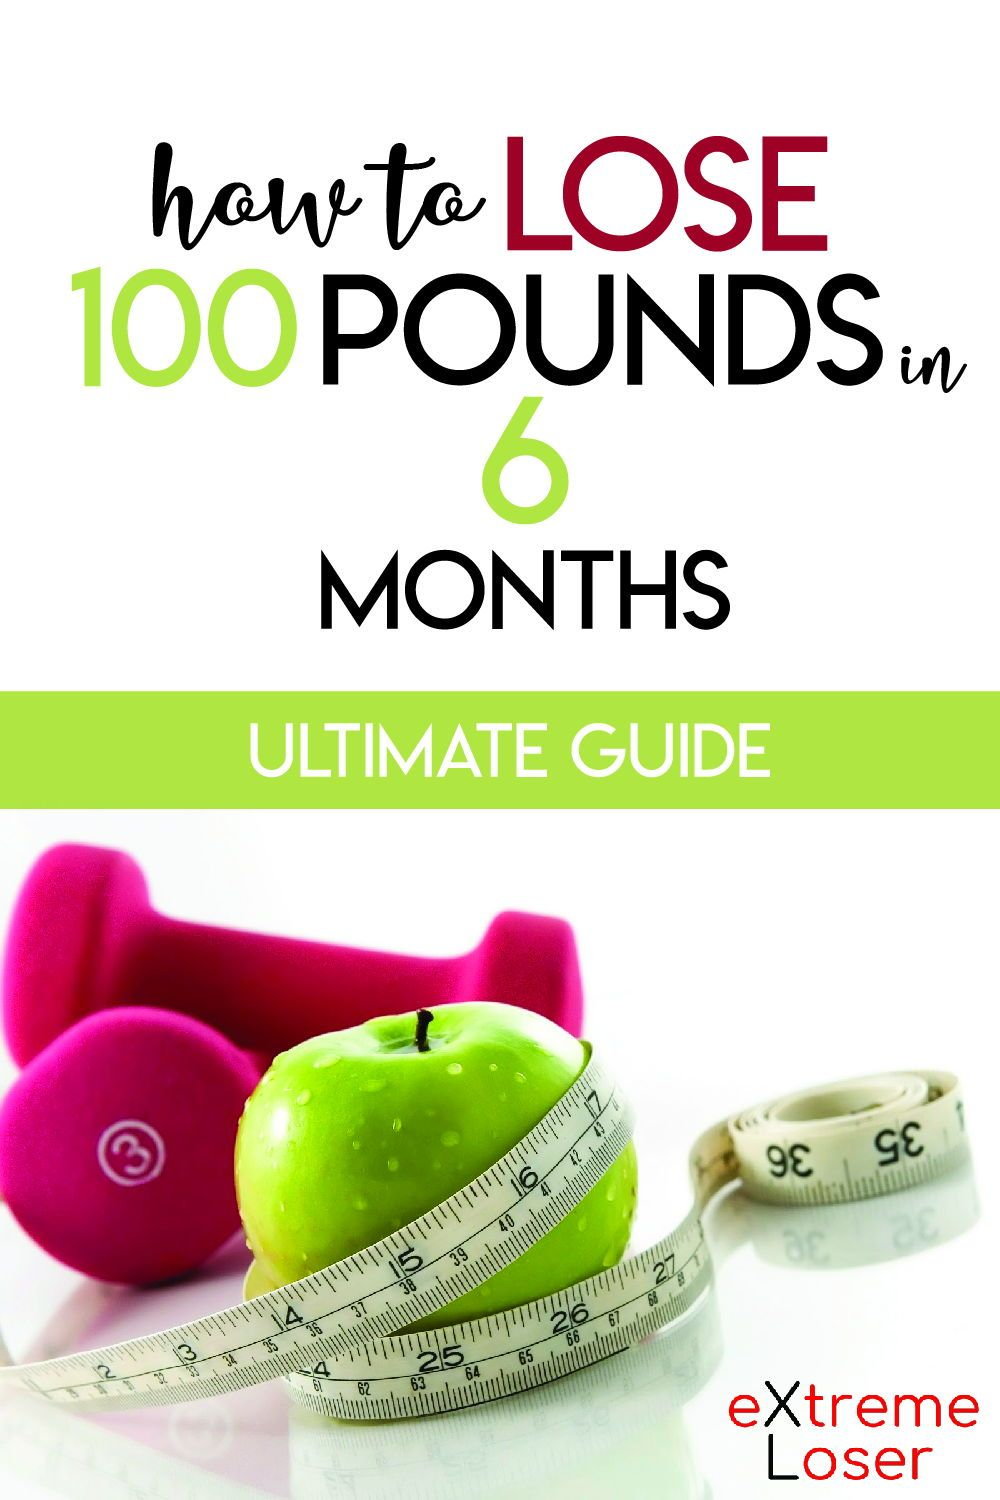 How To Lose 100 Pounds In 6 Months Complete Guide Diet Lose